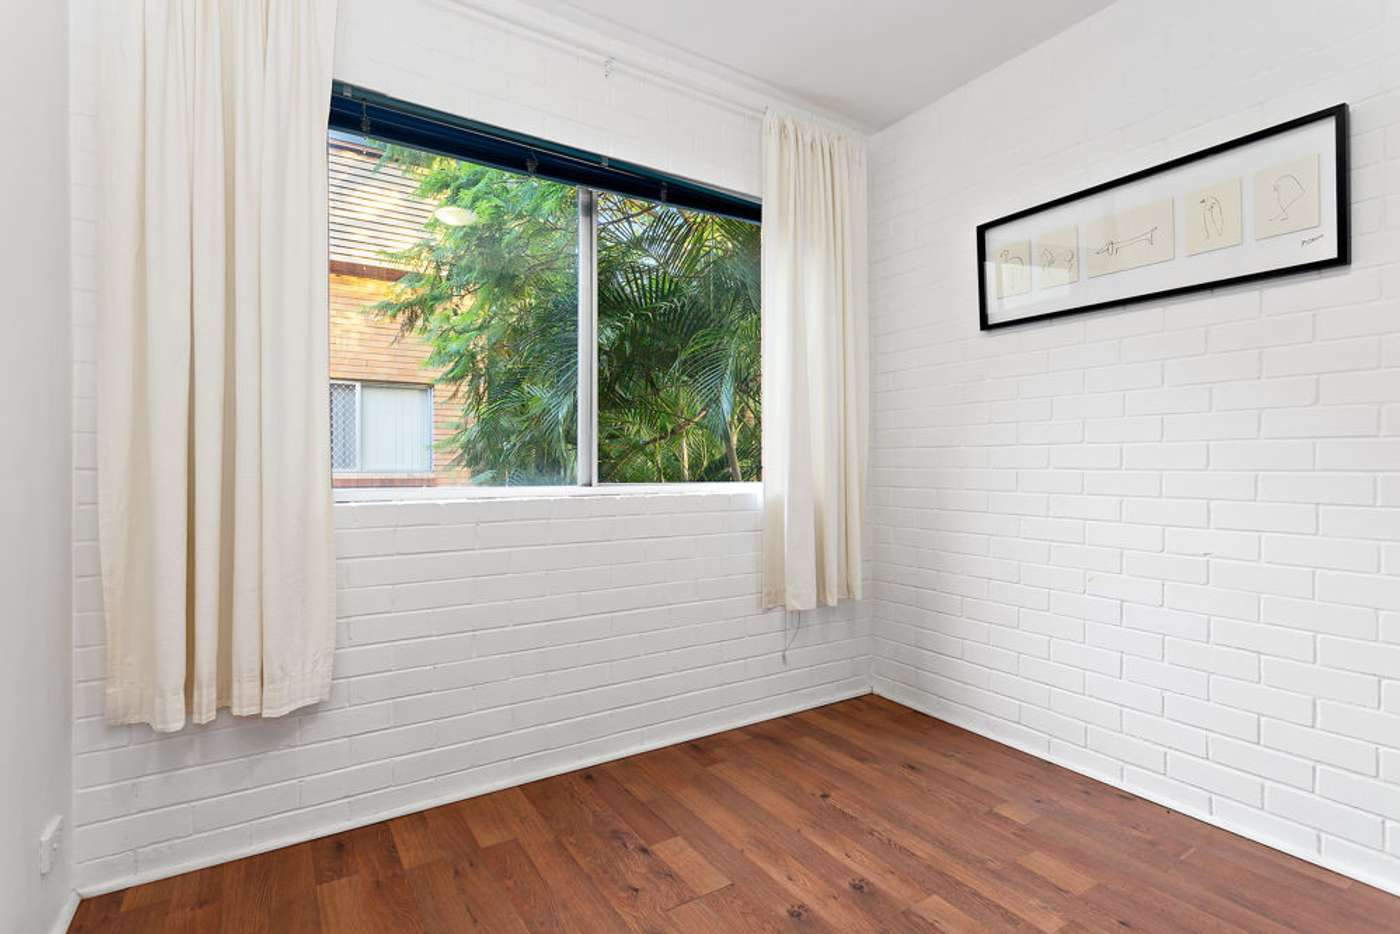 Fifth view of Homely unit listing, 5/104 Gailey Road, St Lucia QLD 4067